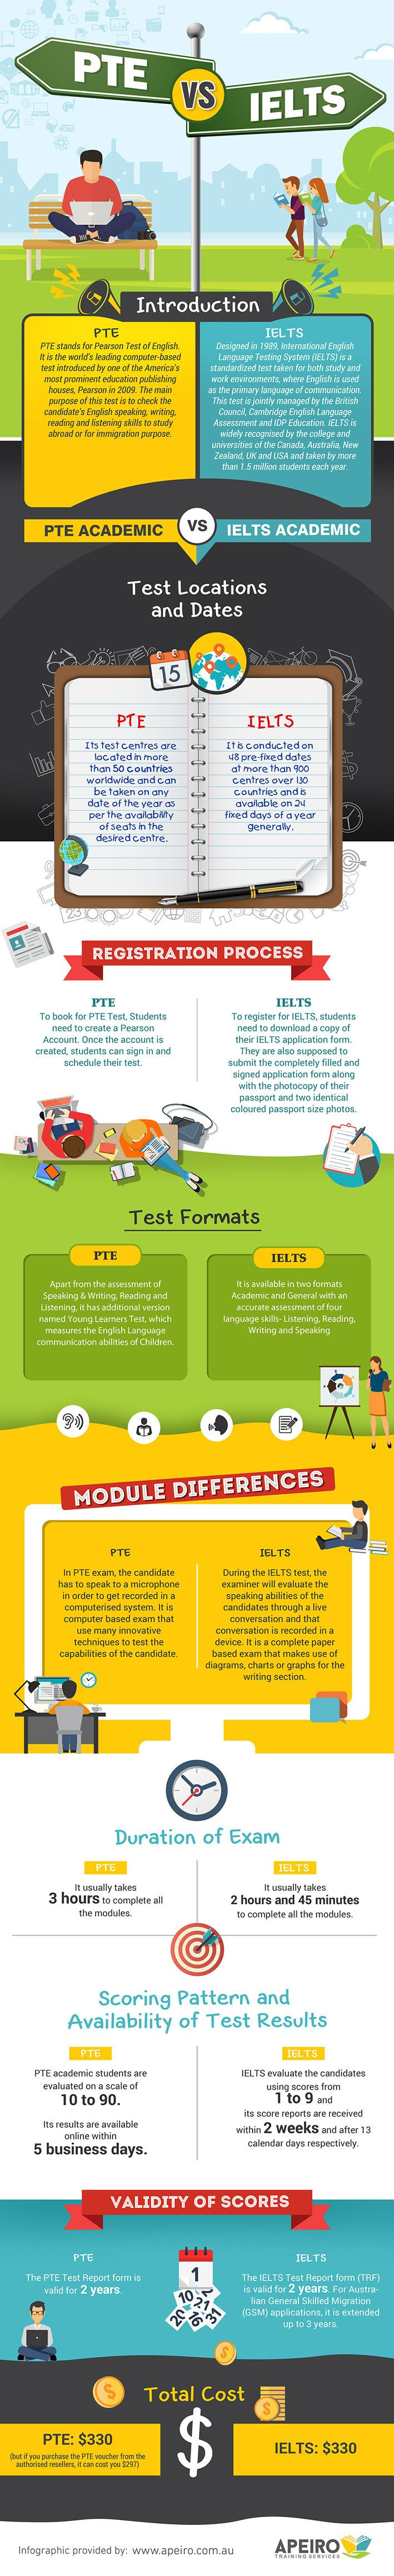 PTE Vs IELTS Infographic - e-Learning Infographics